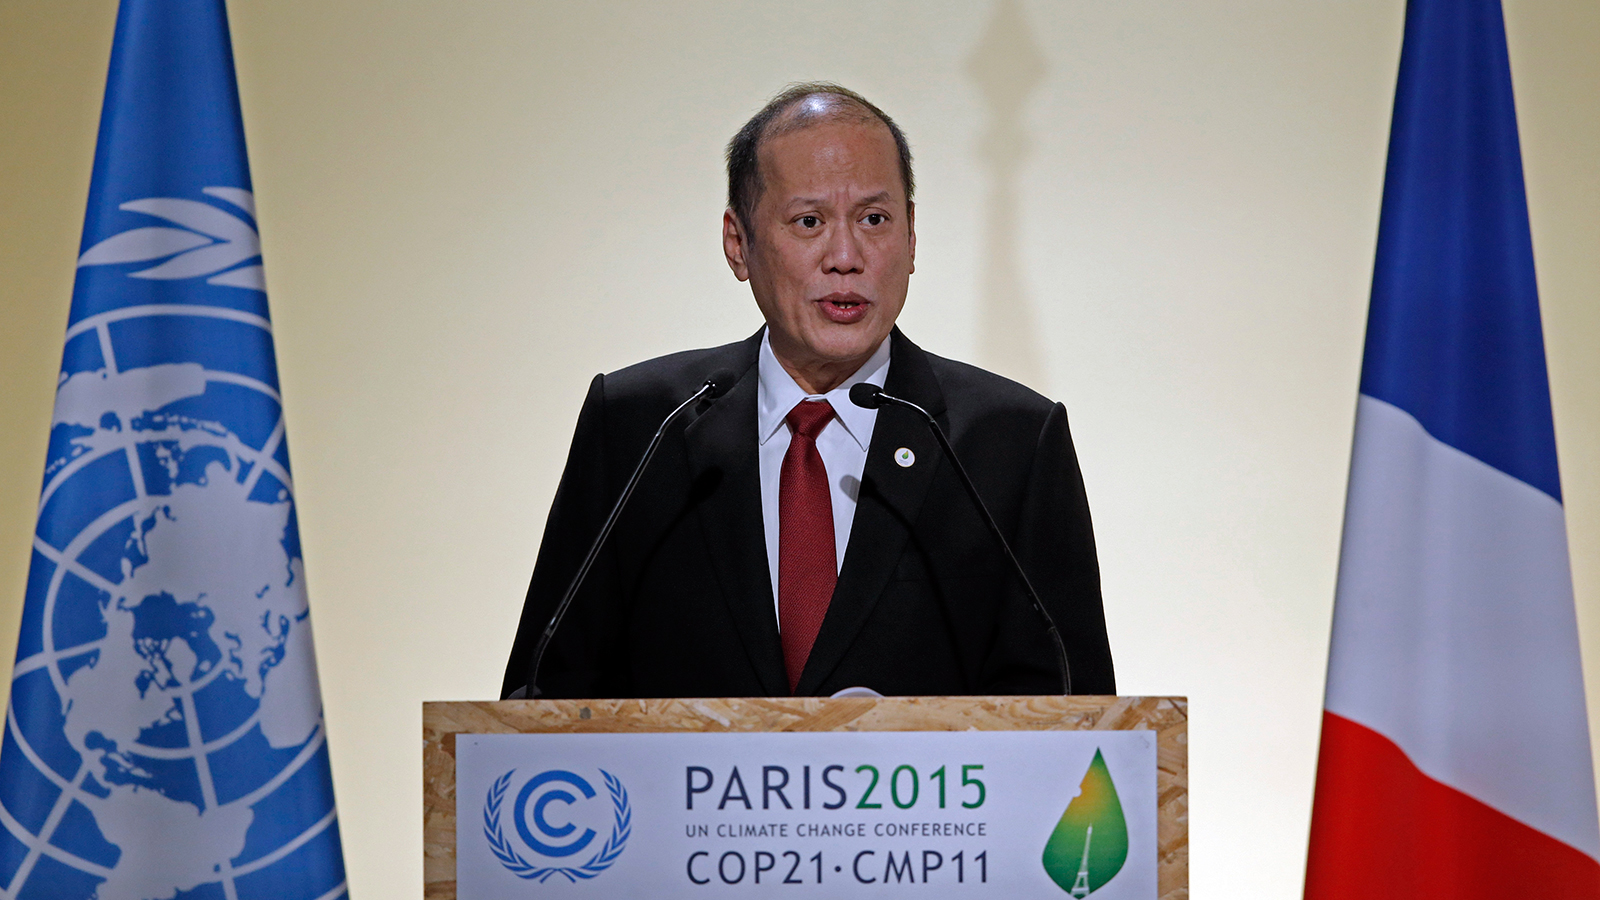 Philippine's President Benigno Aquino delivers a speech during the opening session of the World Climate Change Conference 2015 (COP21) at Le Bourget, near Paris, France, November 30, 2015.